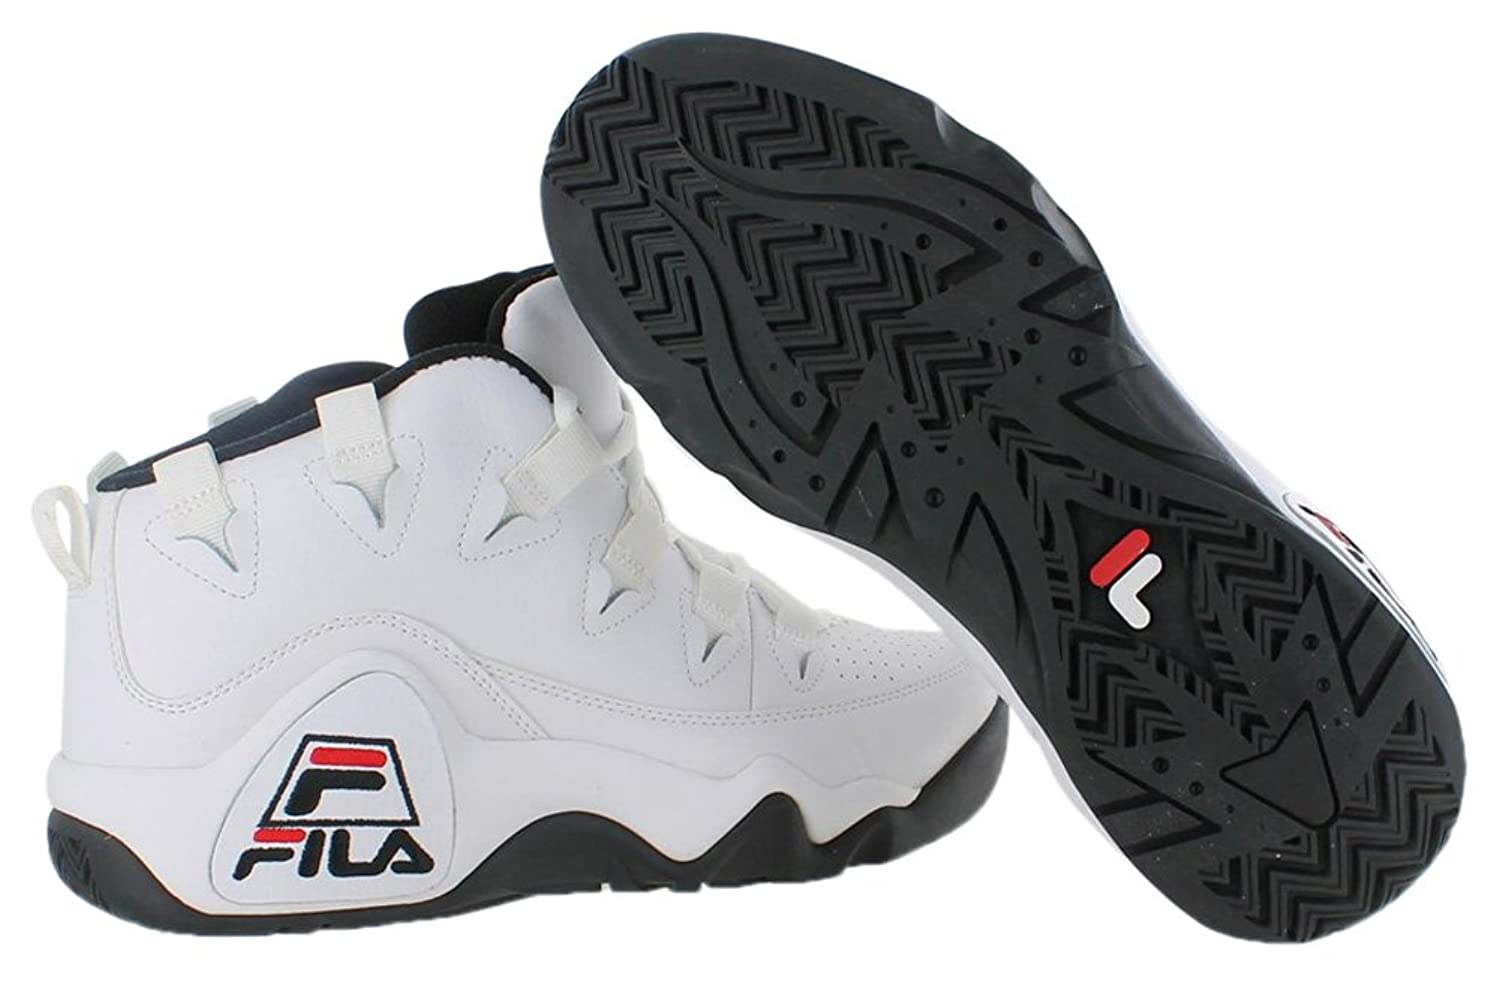 fila 95. fila the 95 sneaker white 10.5: buy online at low prices in india - amazon.in